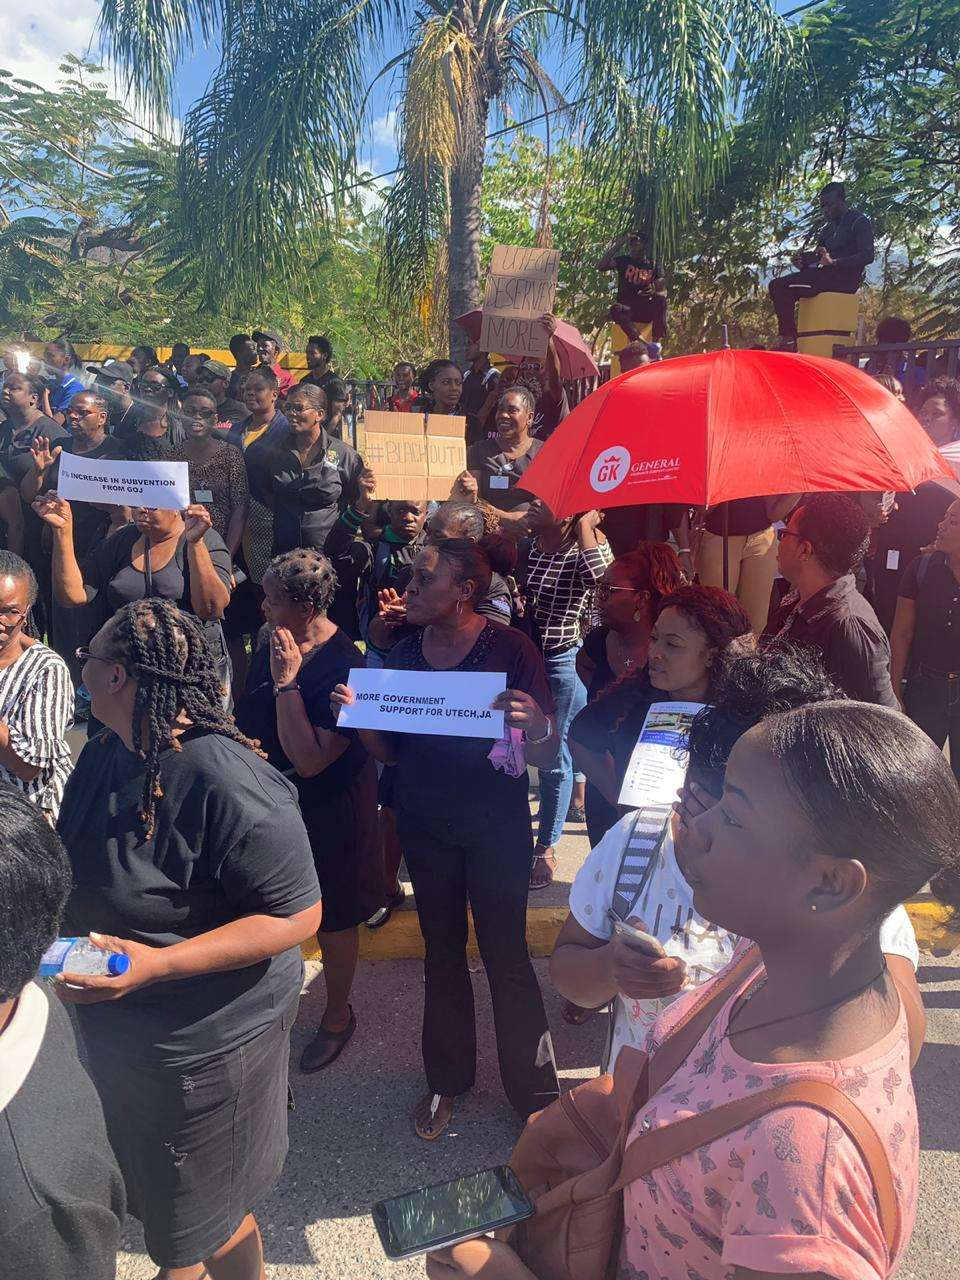 UTech Staff & Students Protest Demanding Larger Govt Subvention